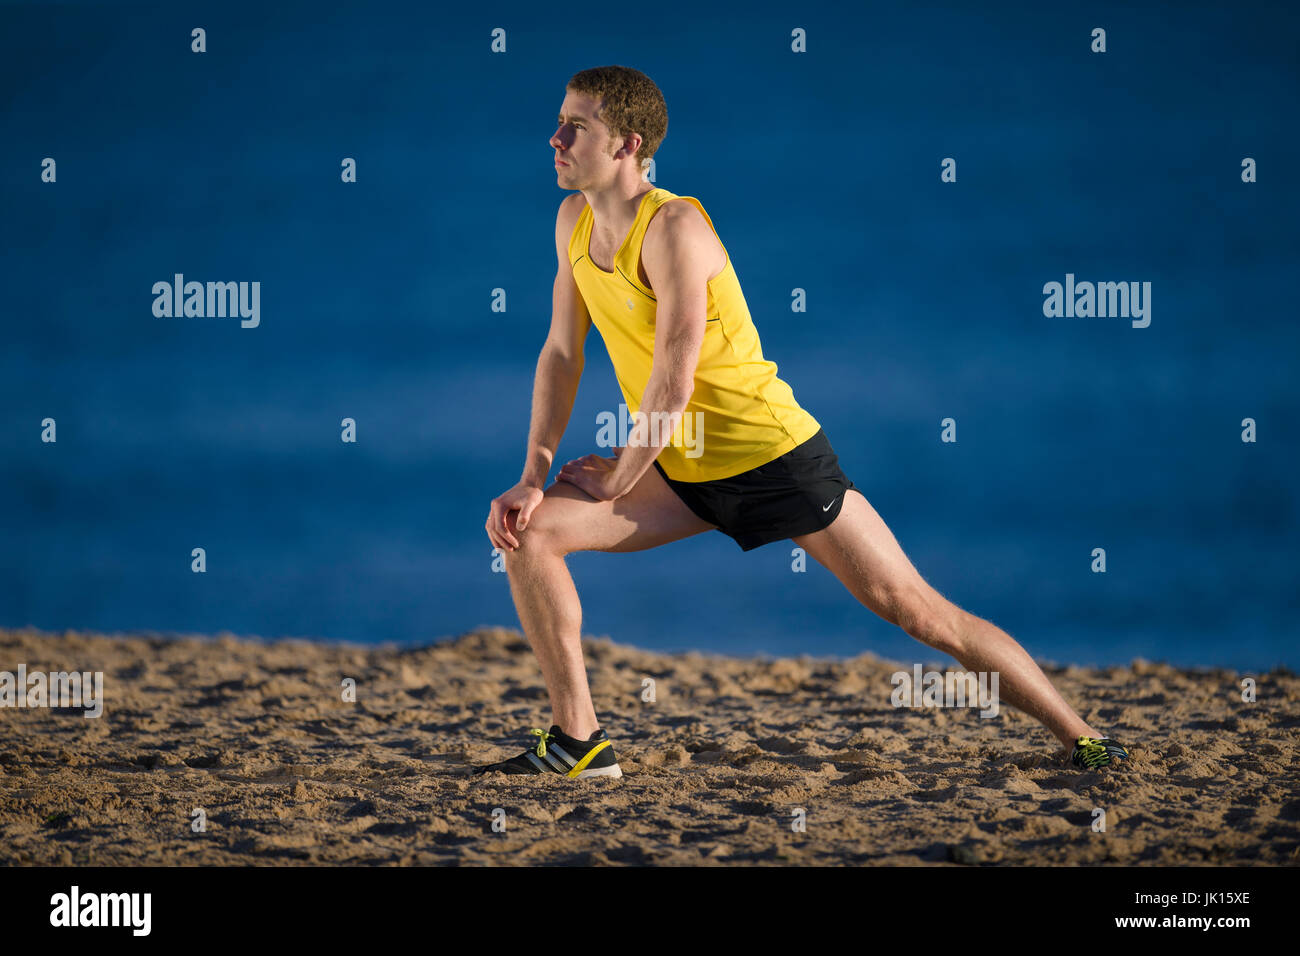 Runner warming up stretching leg muscles - Stock Image